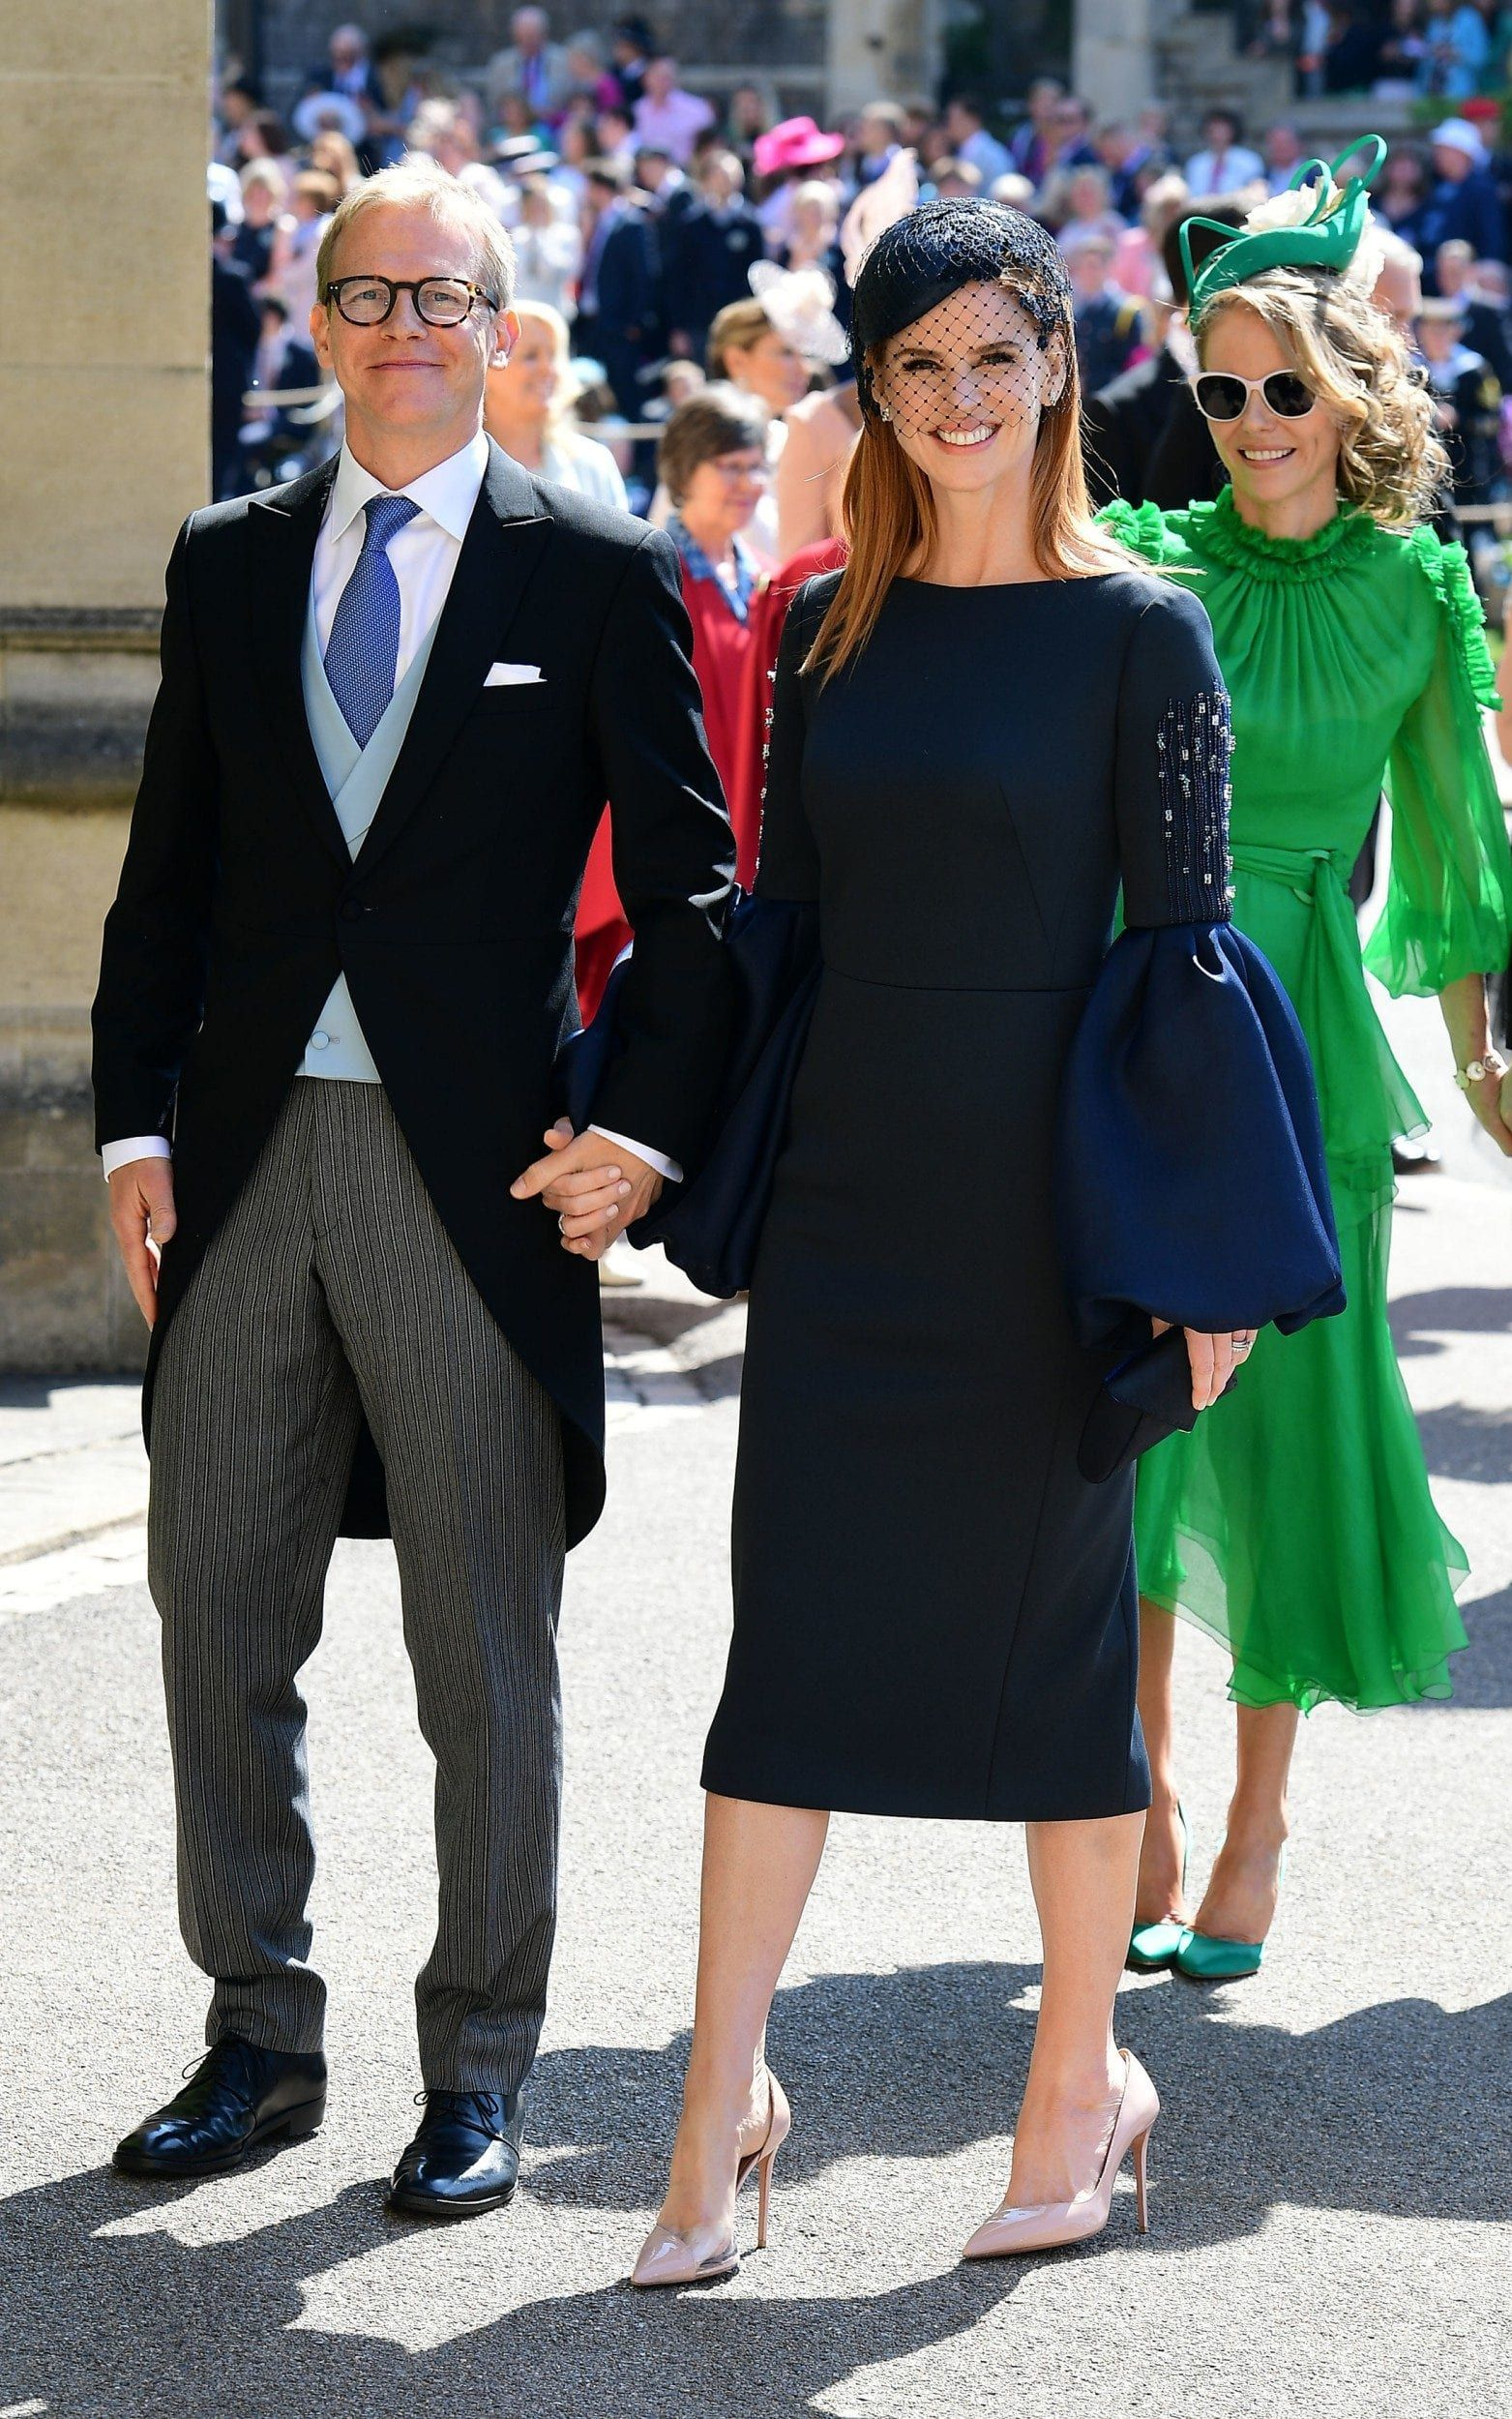 Best Royal Wedding Guest Outfits Serena Williams And Priyanka